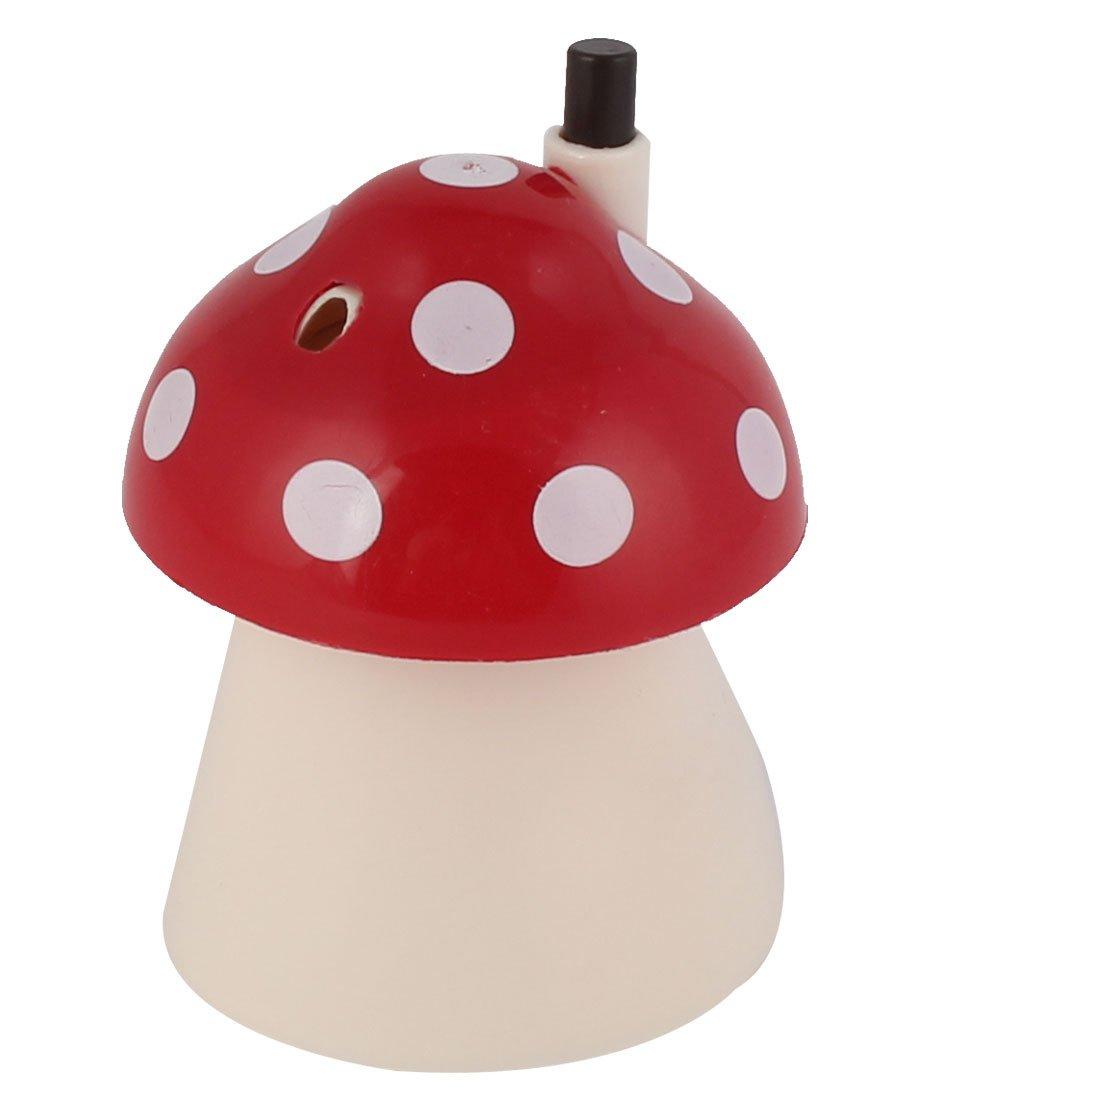 uxcell Plastic Mushroom Shaped Household Family Toothpick Holder Case Red White a16042700ux1882